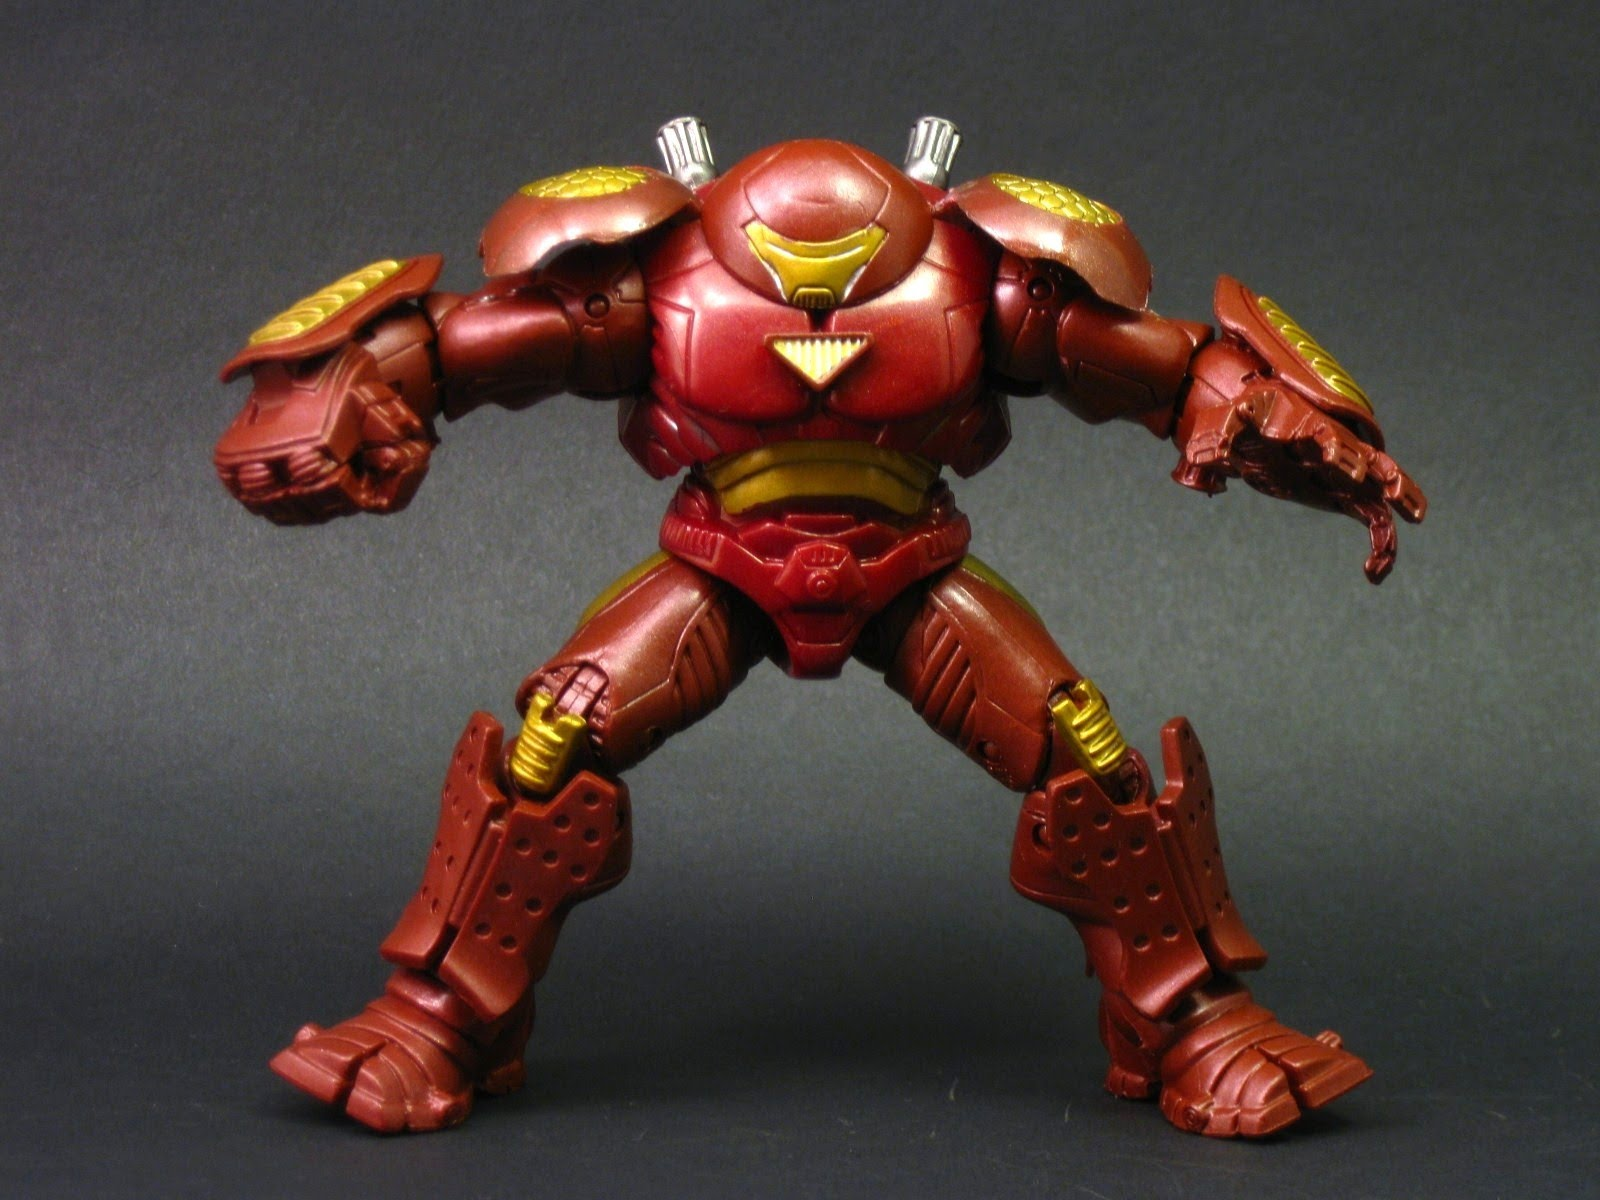 Lego Marvel Superheroes Hulkbuster Iron Man armour Powers